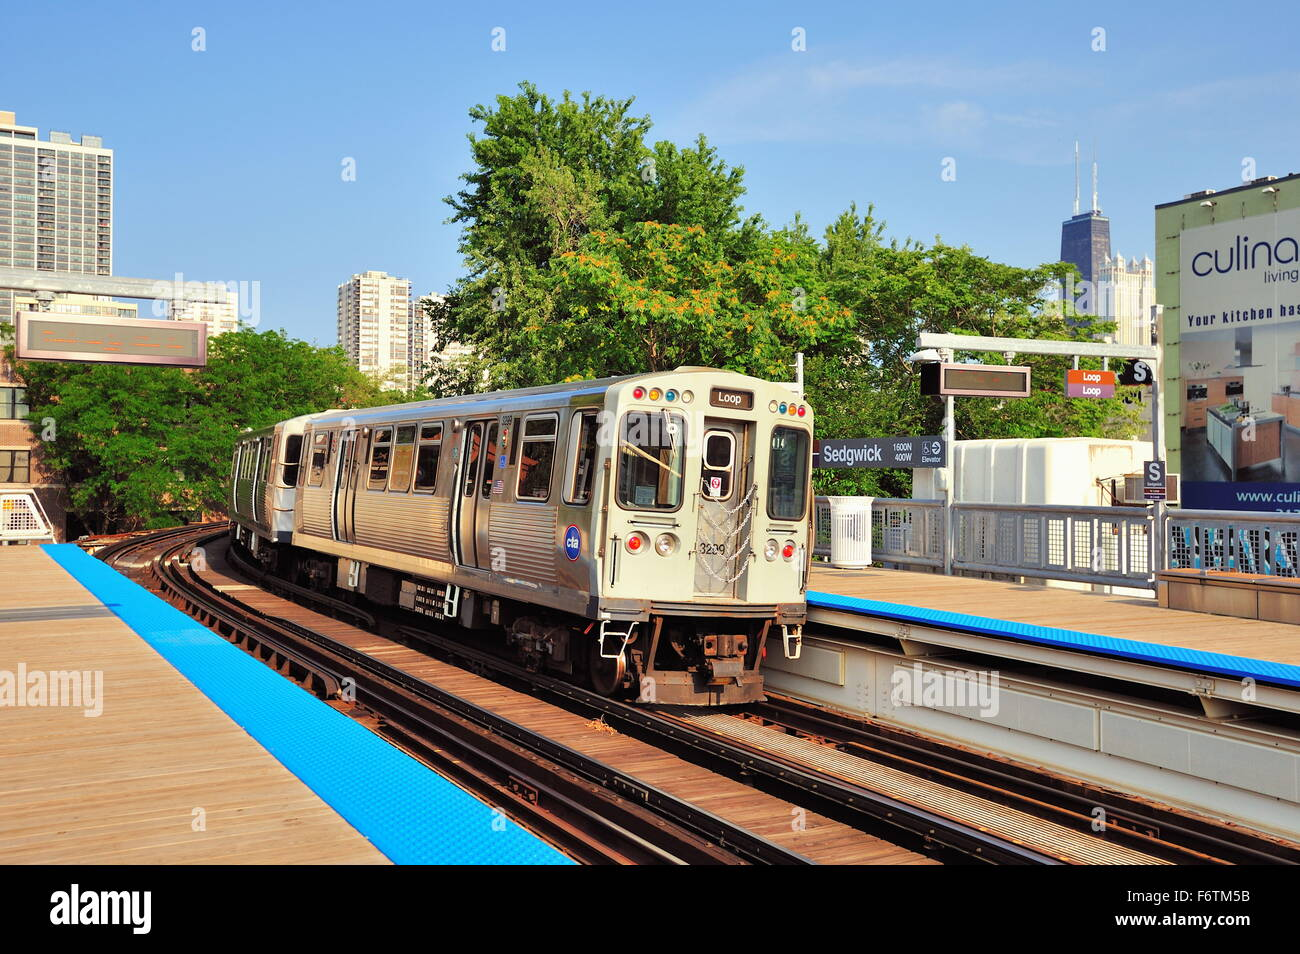 A CTA Brown Line rapid transit train as it departs the Sedgwick Avenue Station on its way to the Loop in downtown - Stock Image